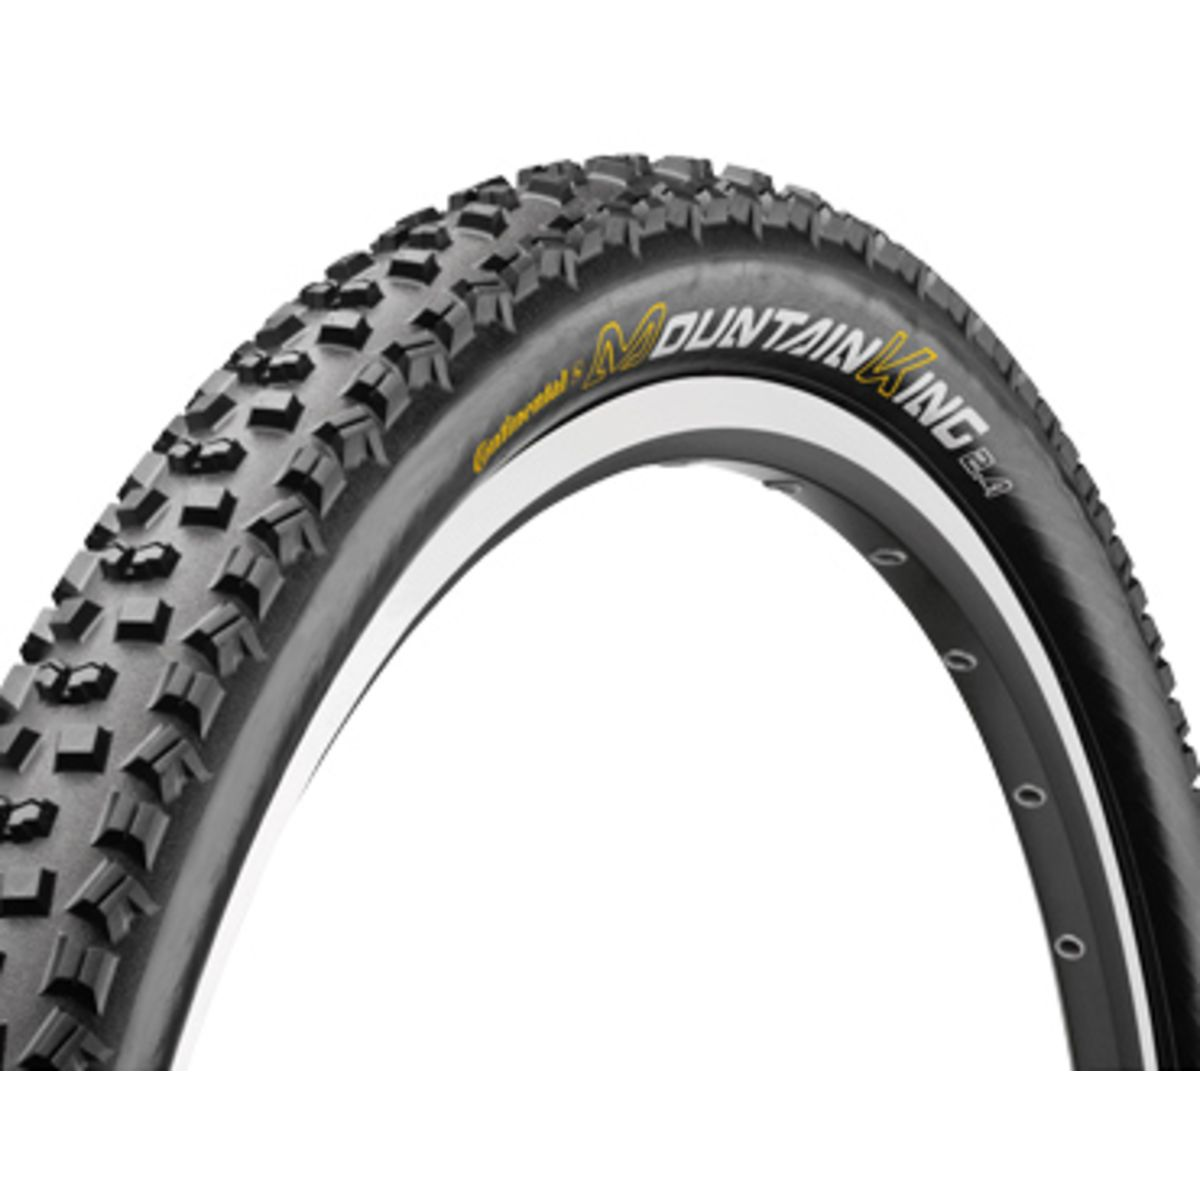 Continental Mountain King II Sport MTB tyre, clincher | Tyres